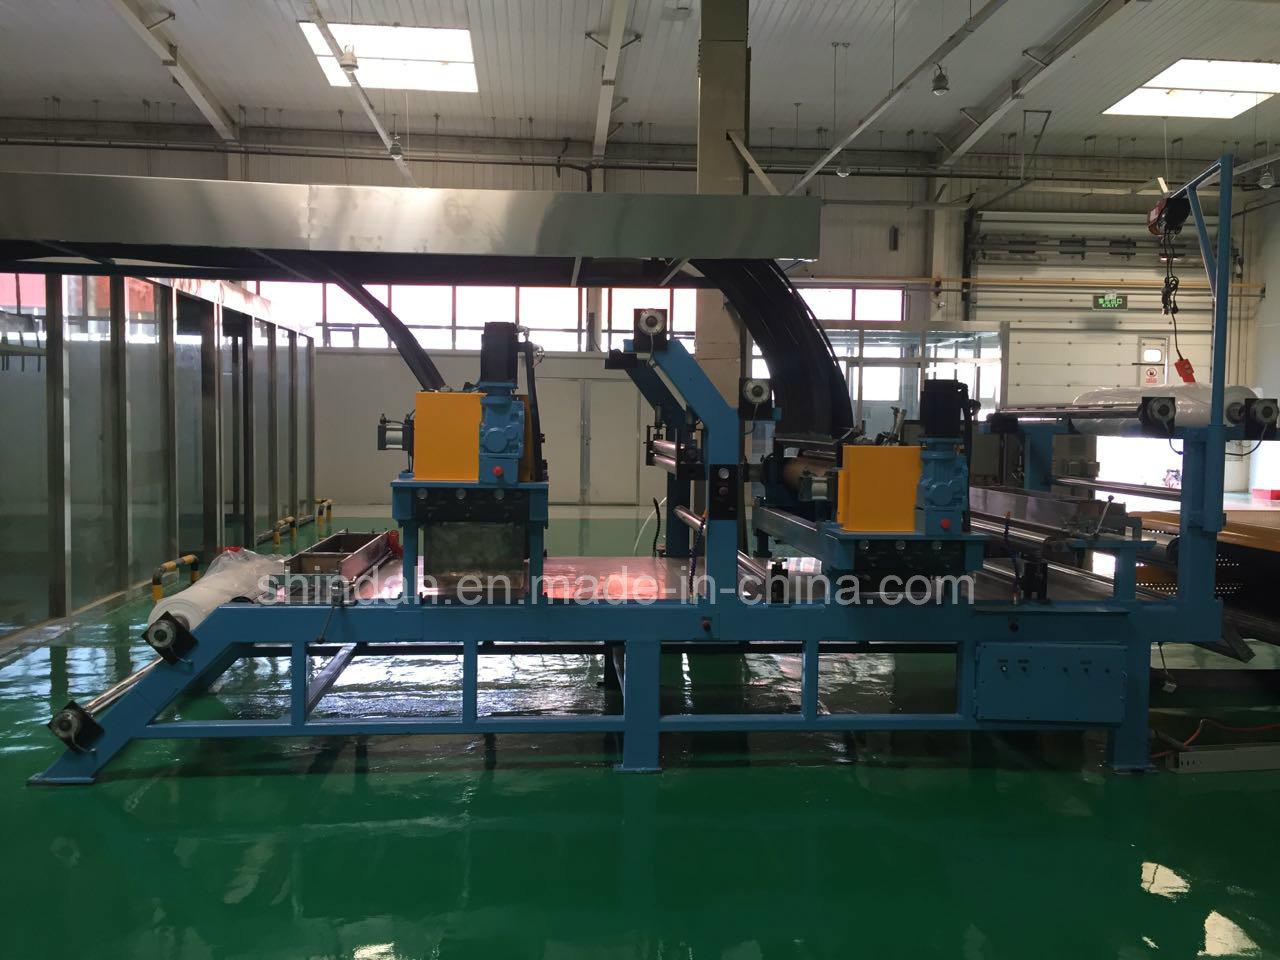 SMC Prepreg Production Line/SMC Machine